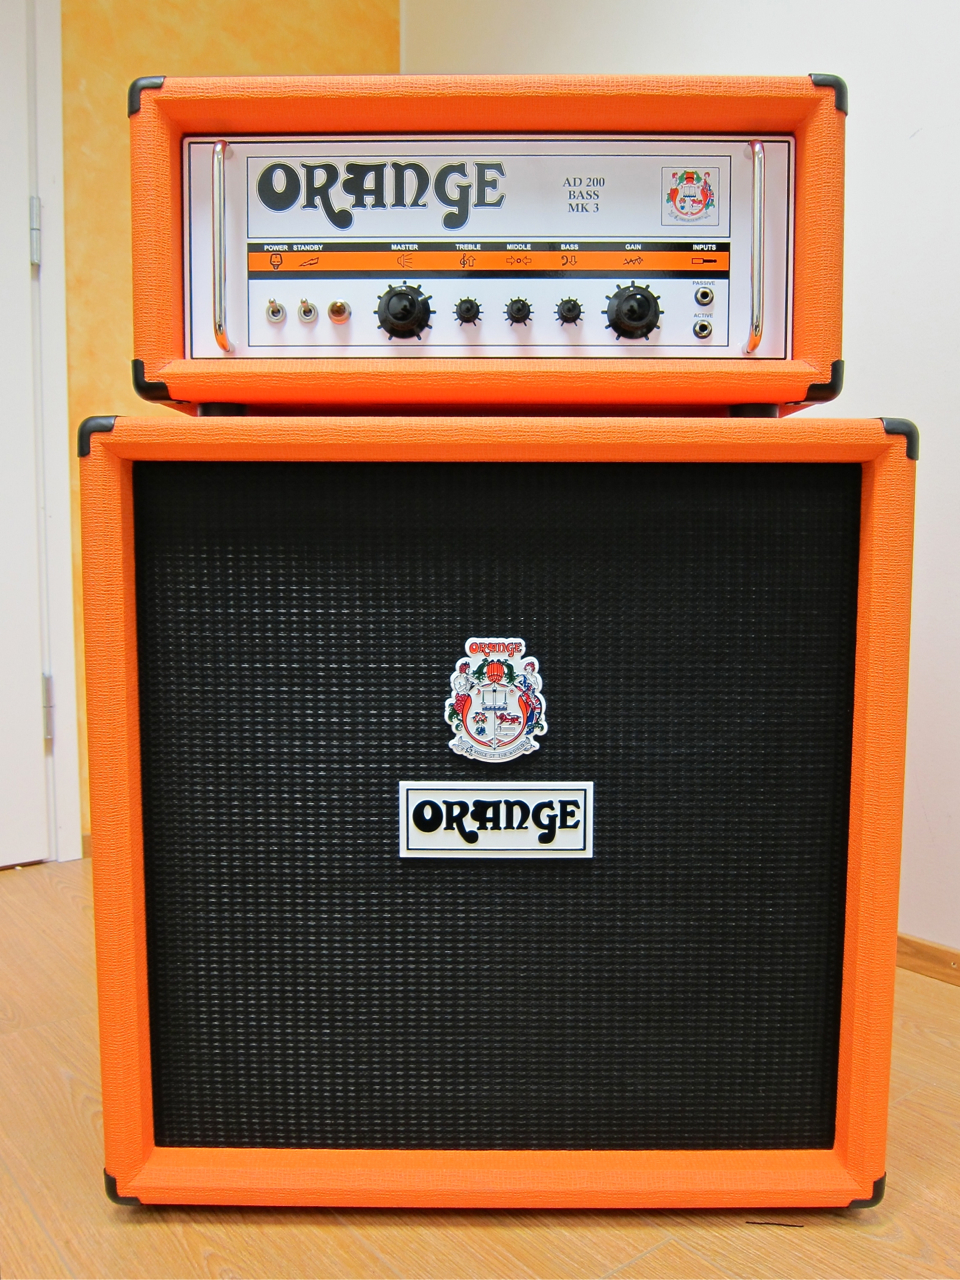 review  orange ad200 bass mk3   obc410